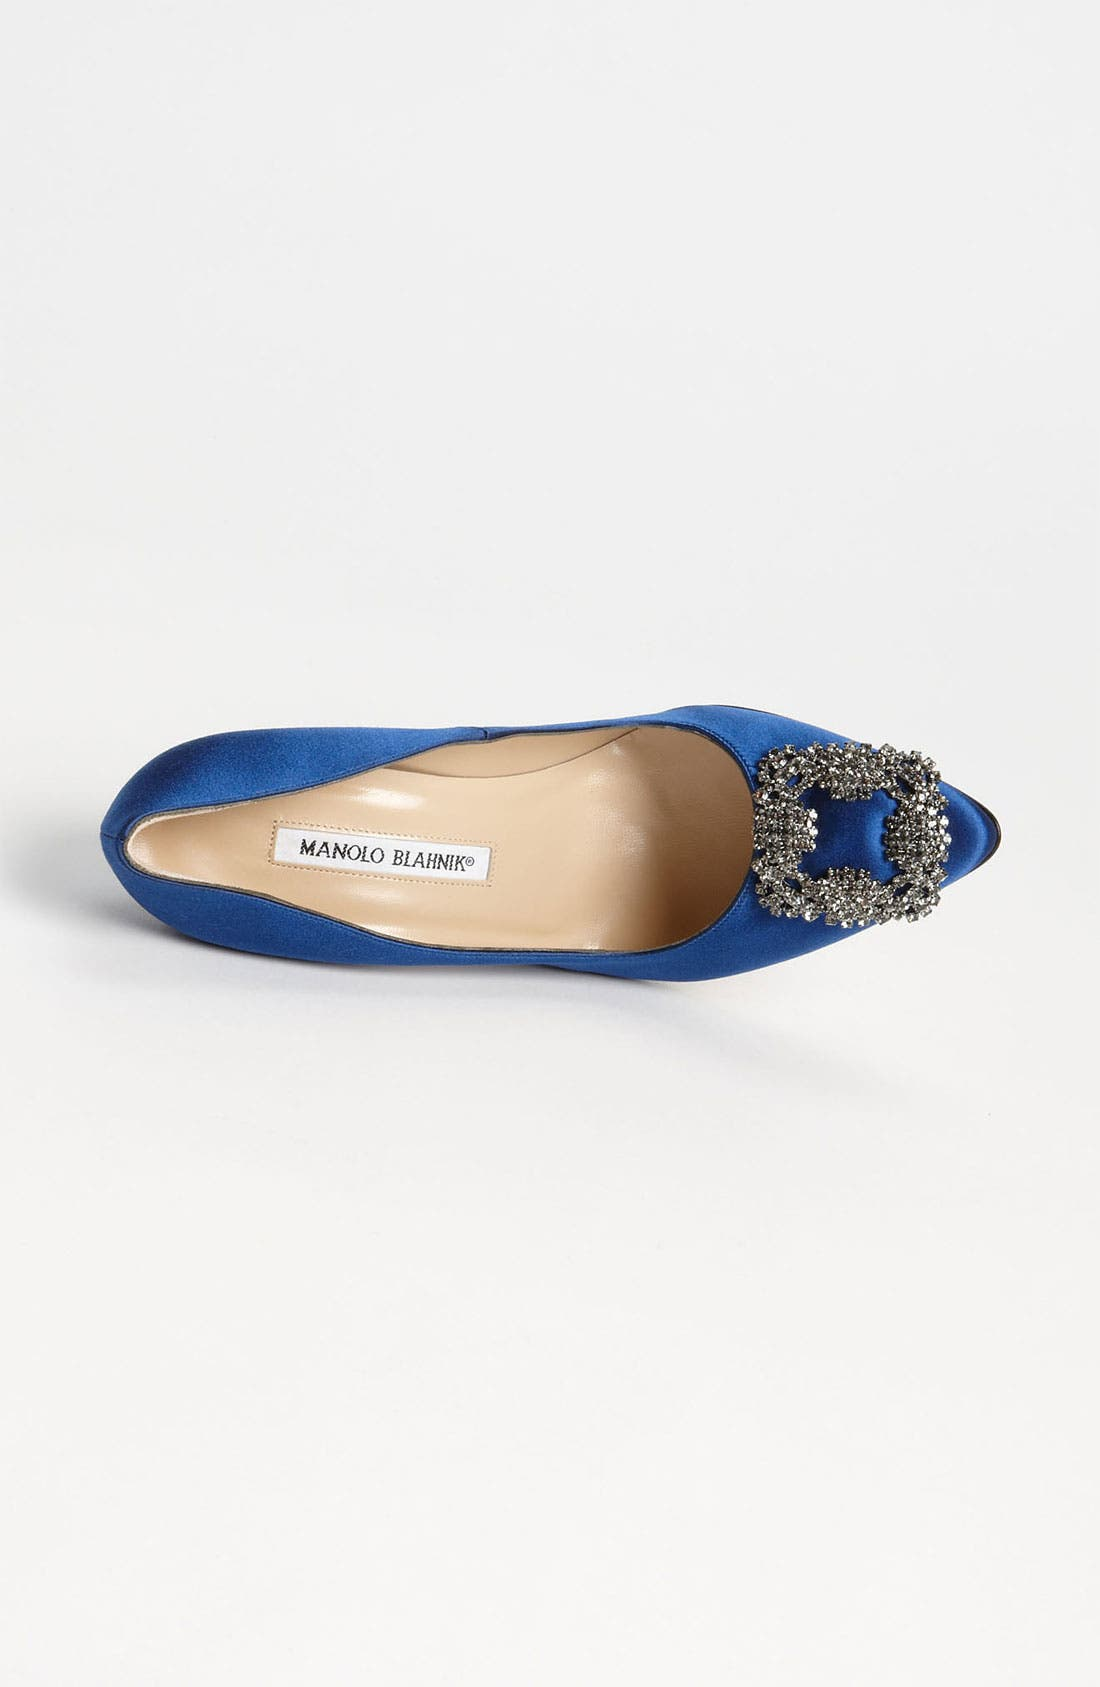 Alternate Image 3  - Manolo Blahnik 'Hangisi' Jewel Pump (Women)